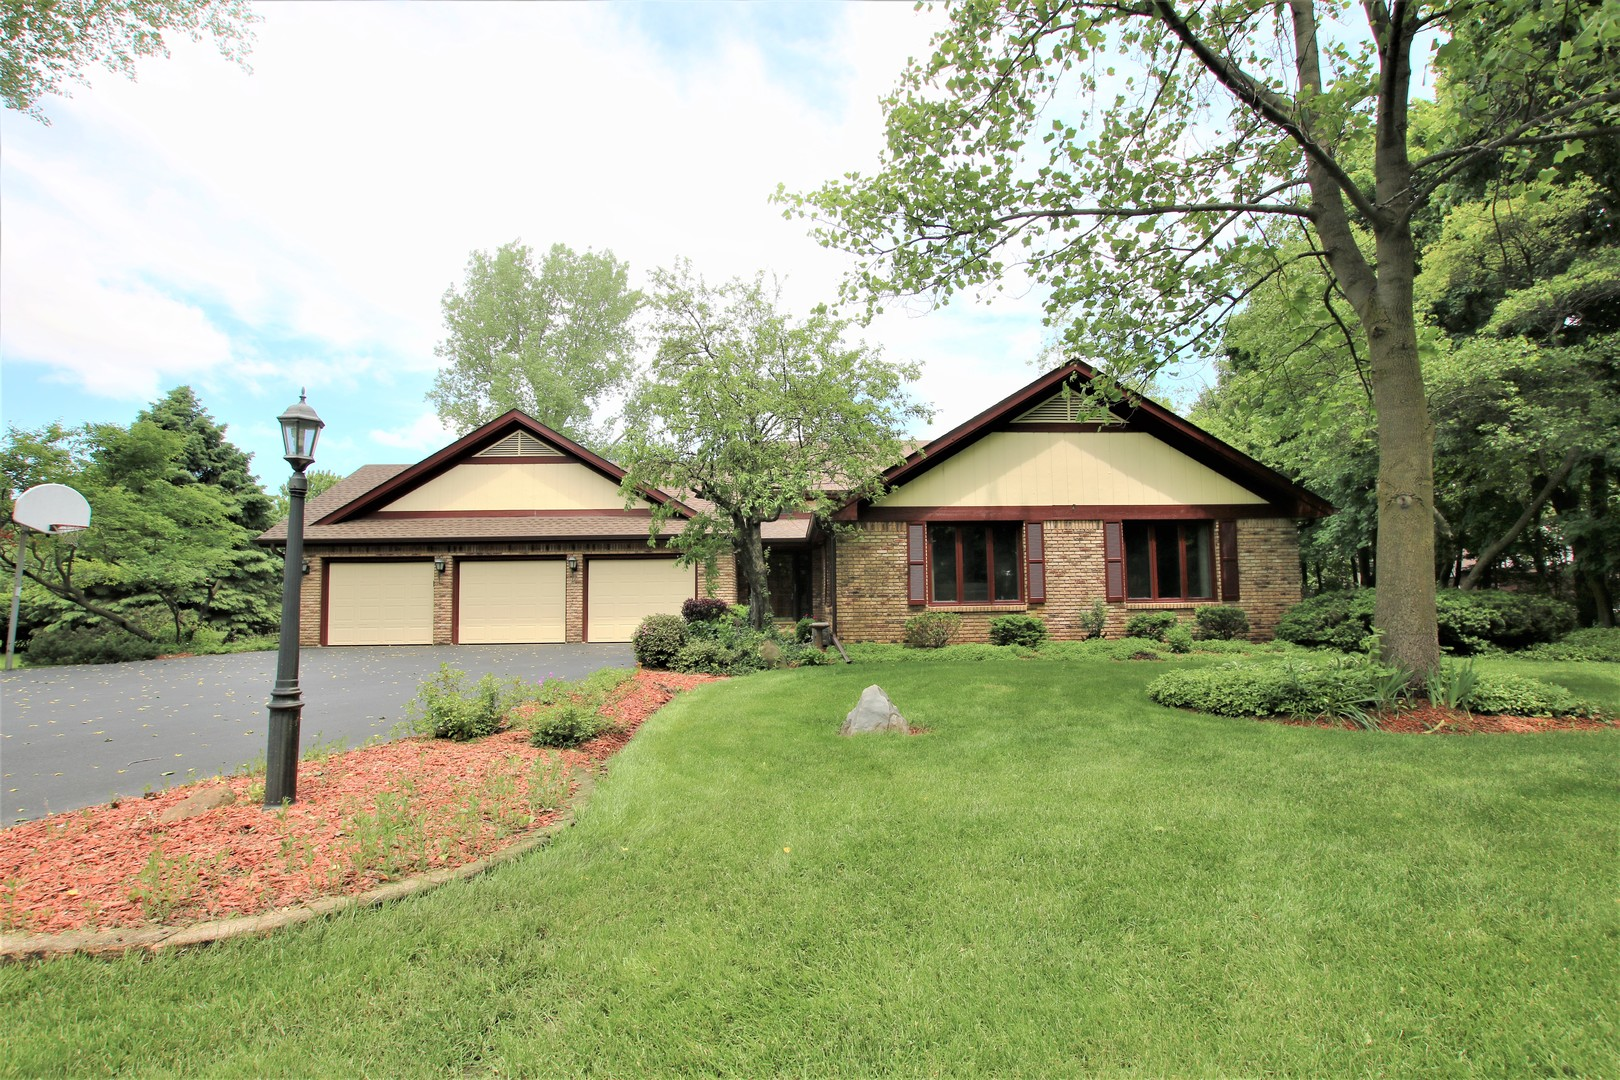 Photo for 18N509 Sleepy Hollow Lane, DUNDEE, IL 60118 (MLS # 10321675)